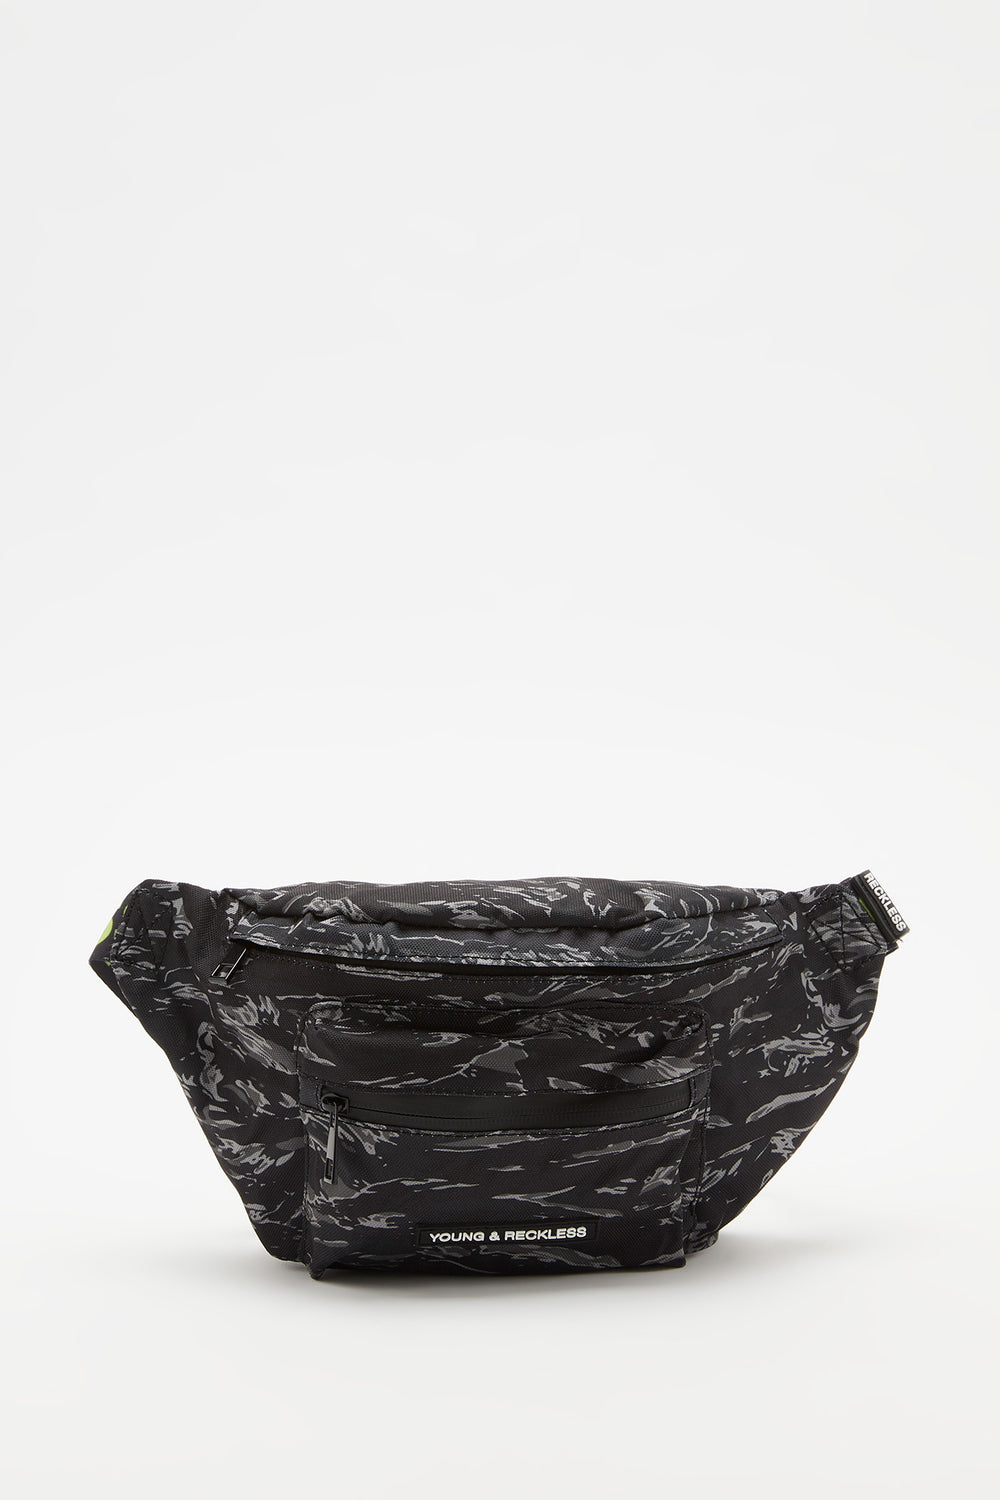 Young & Reckless Camo Fanny Pack Black